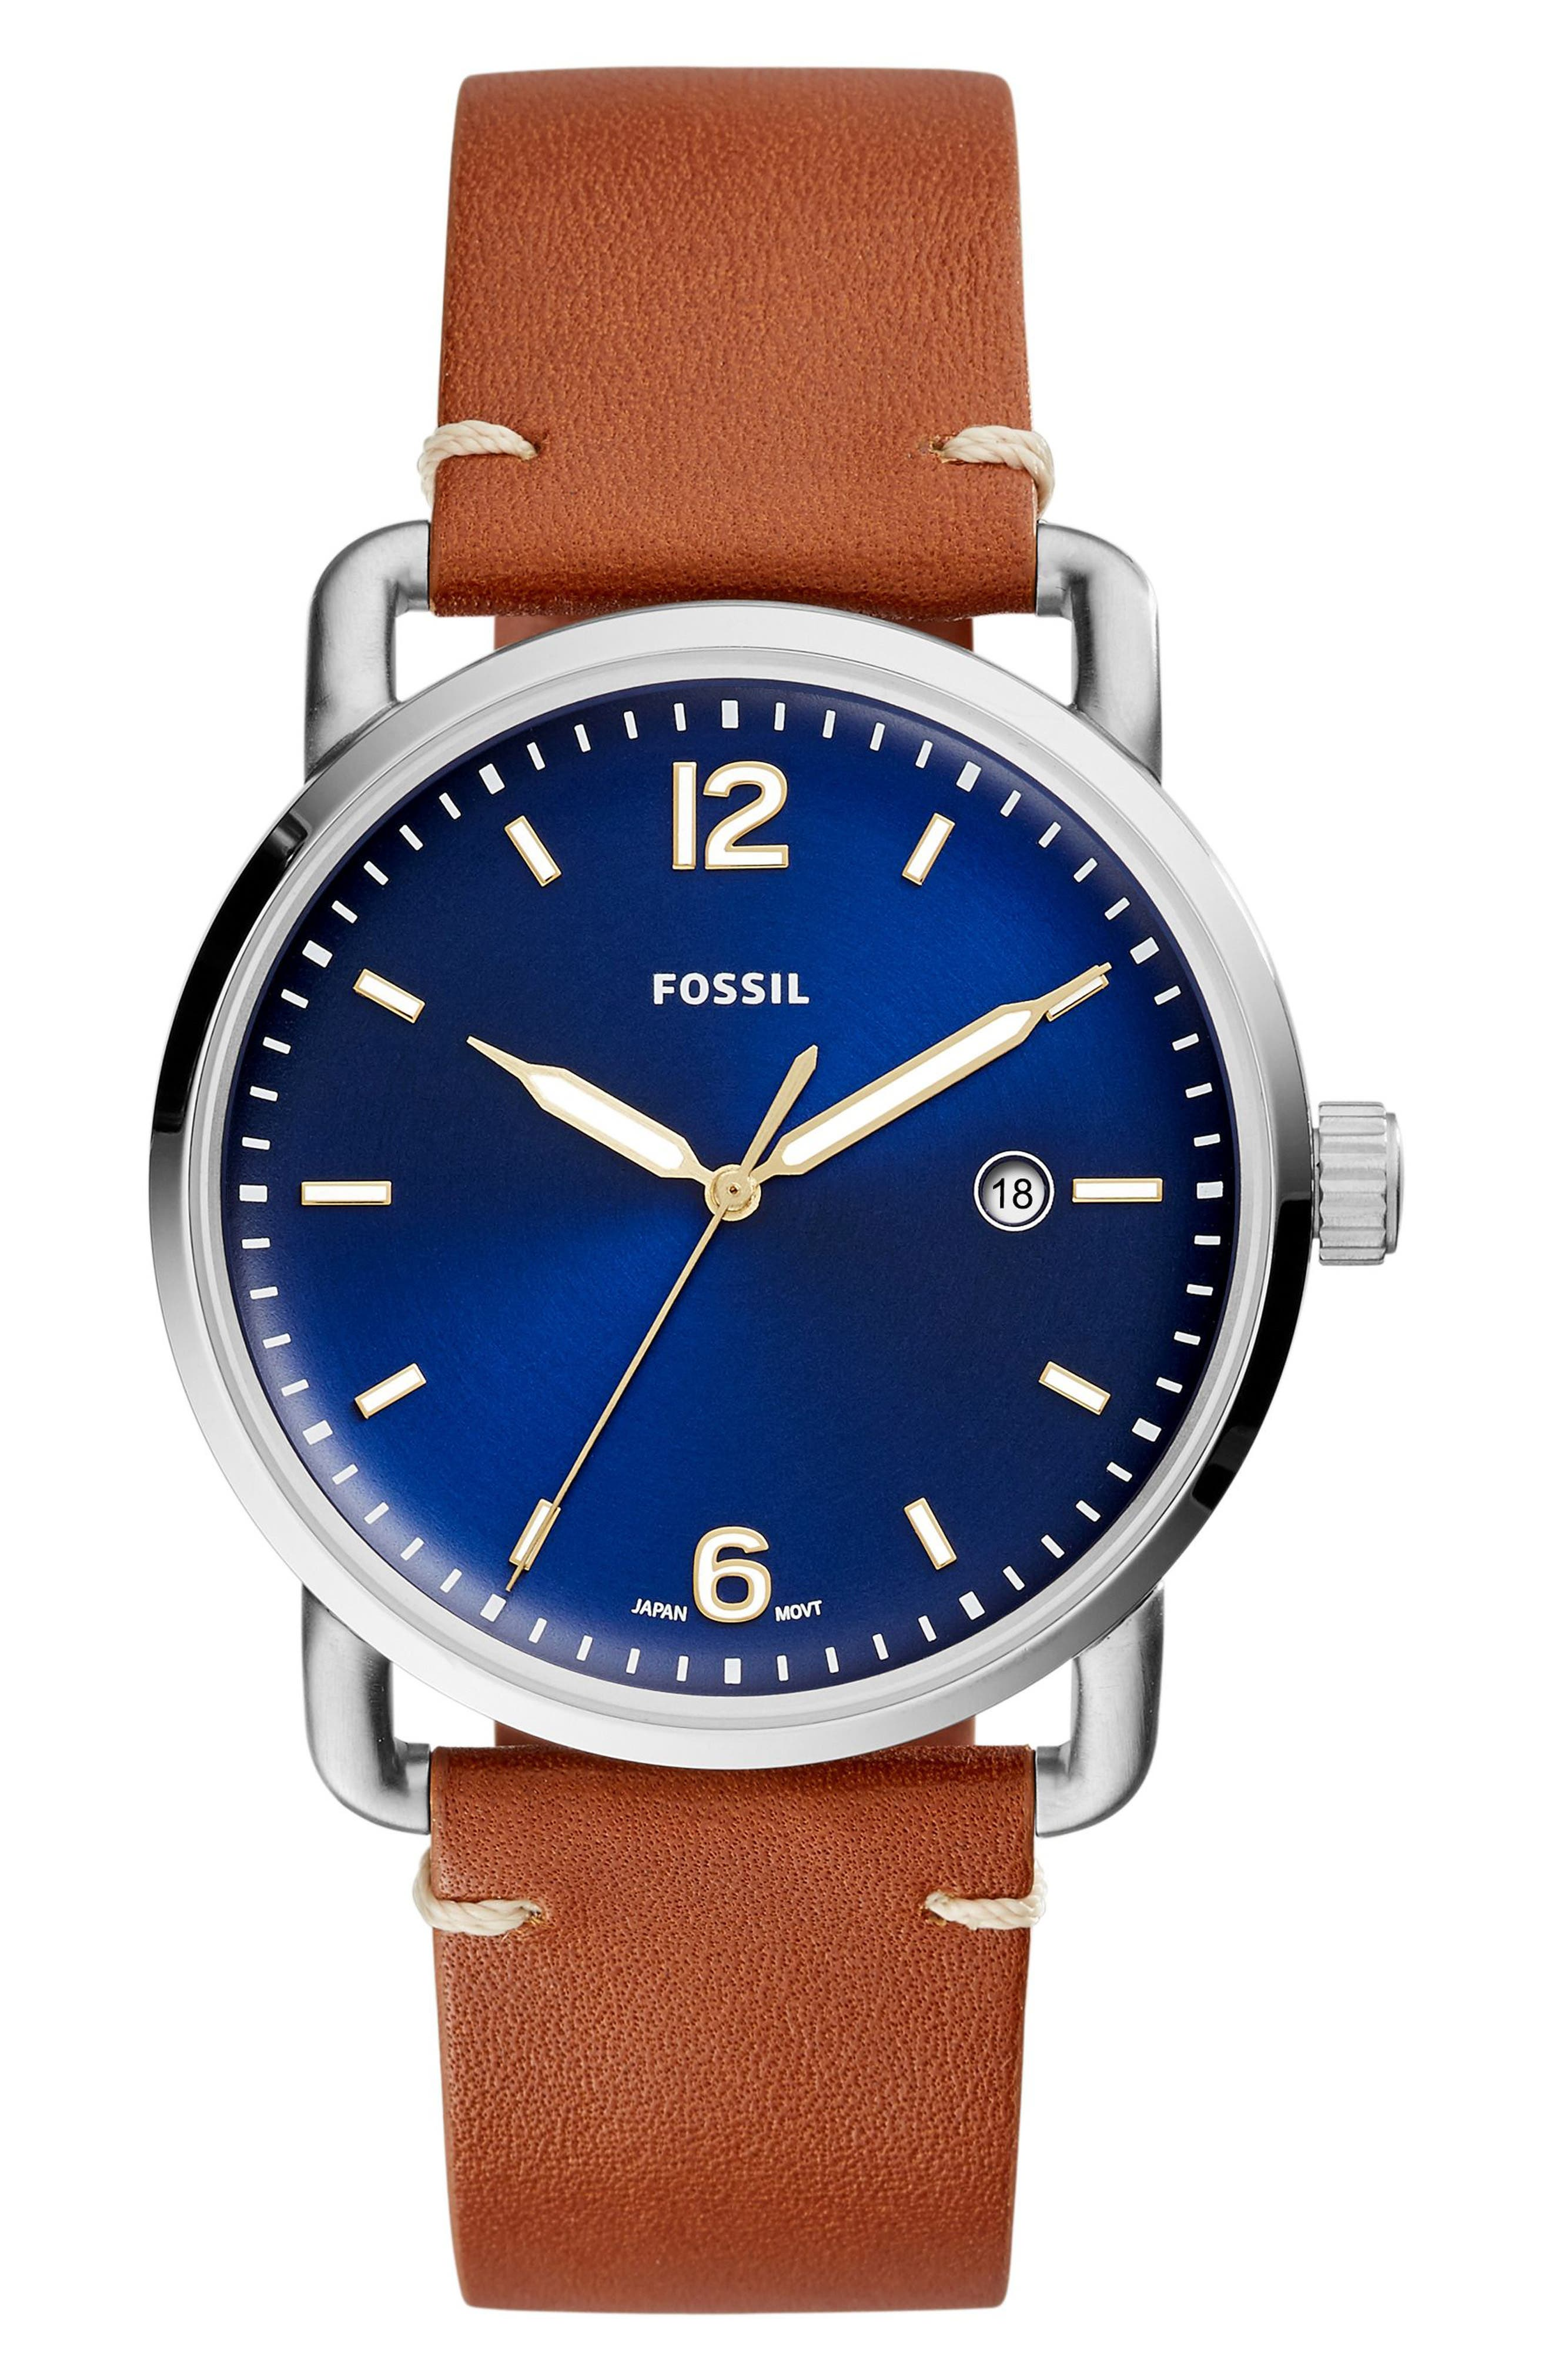 FOSSIL, The Commuter Leather Strap Watch, 42mm, Main thumbnail 1, color, BROWN/ BLUE/ SILVER